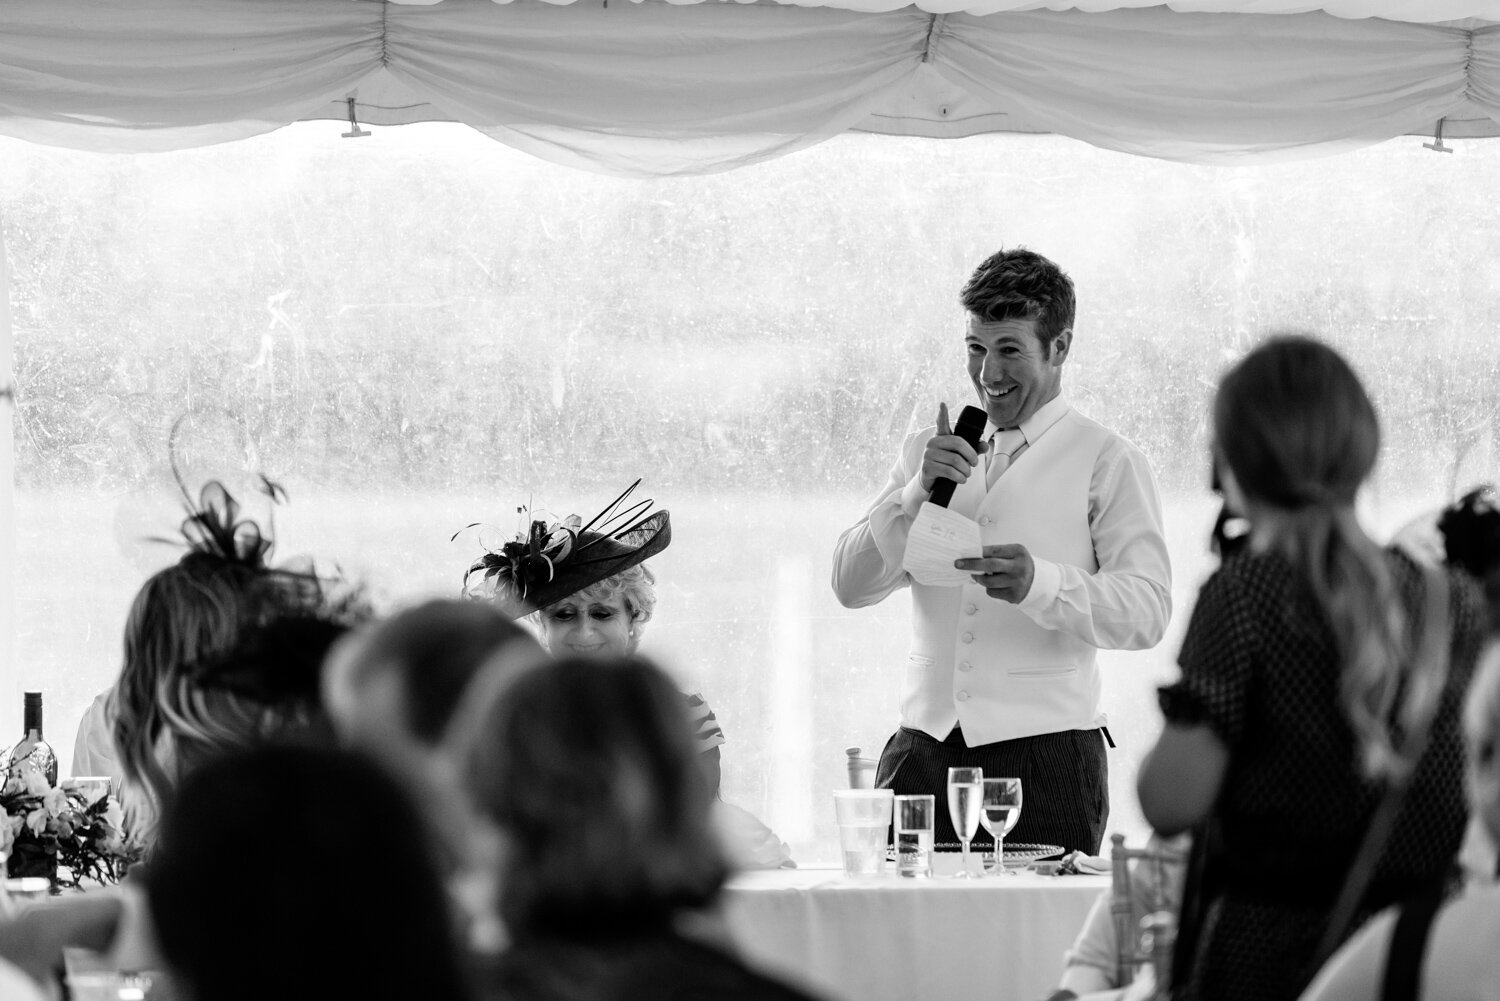 Master of ceremonies during speeches at Powys wedding